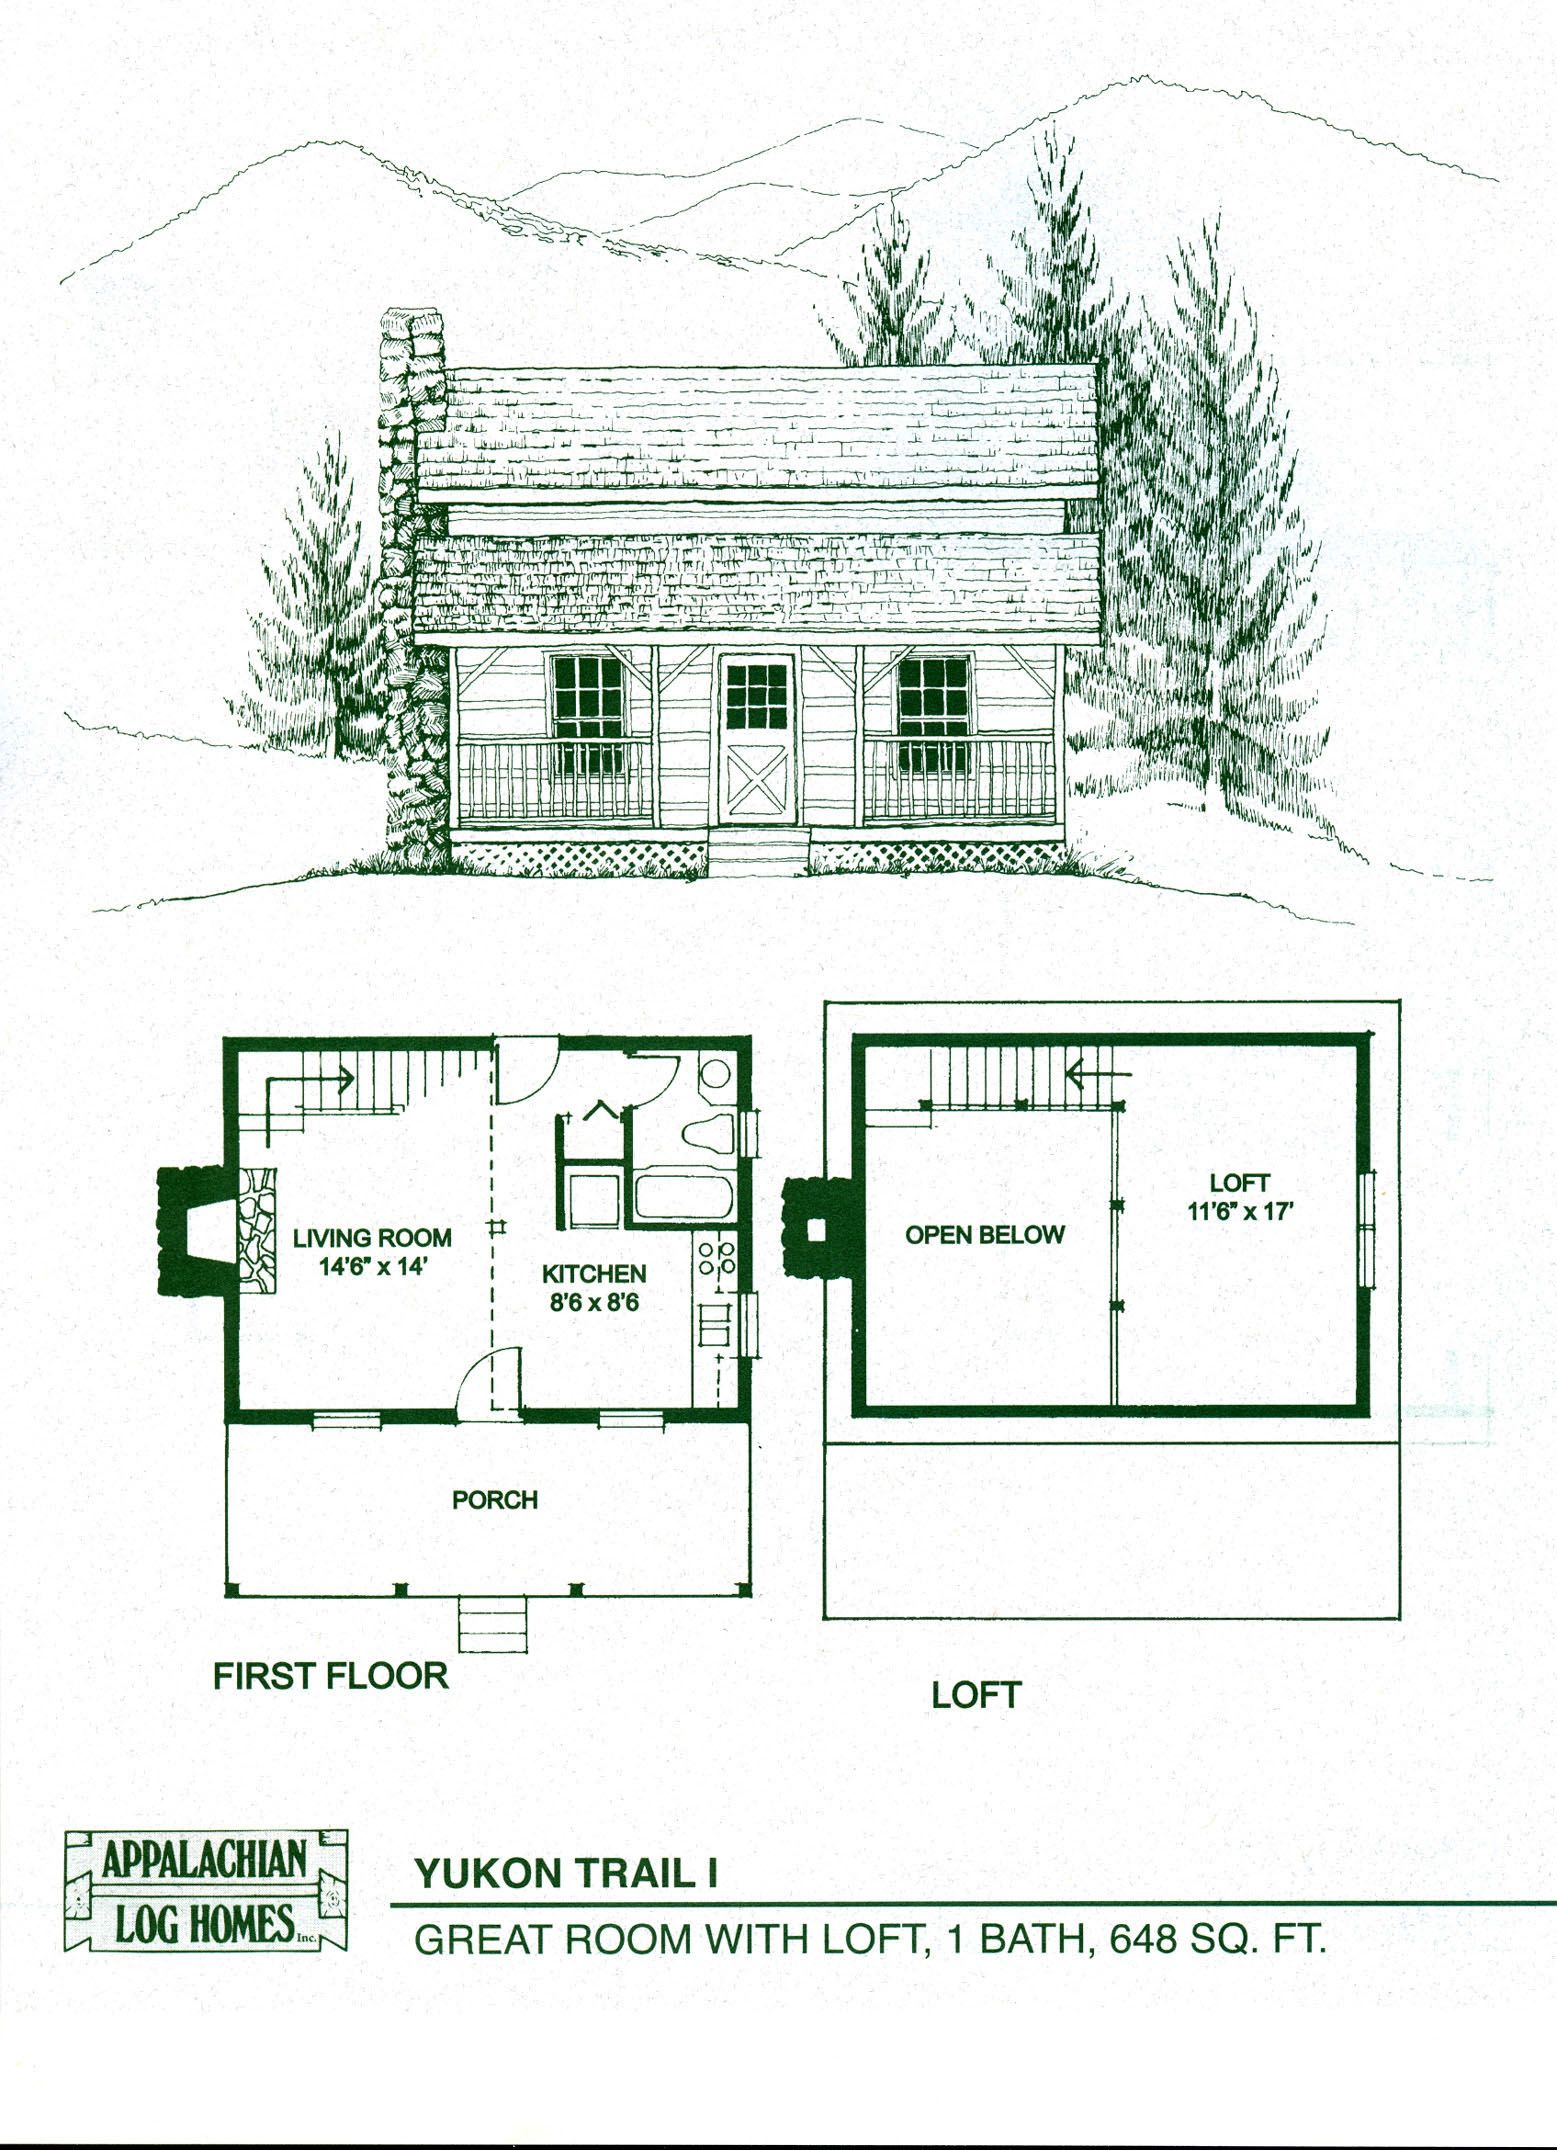 Log home floor plans log cabin kits appalachian log for Log home designs and floor plans